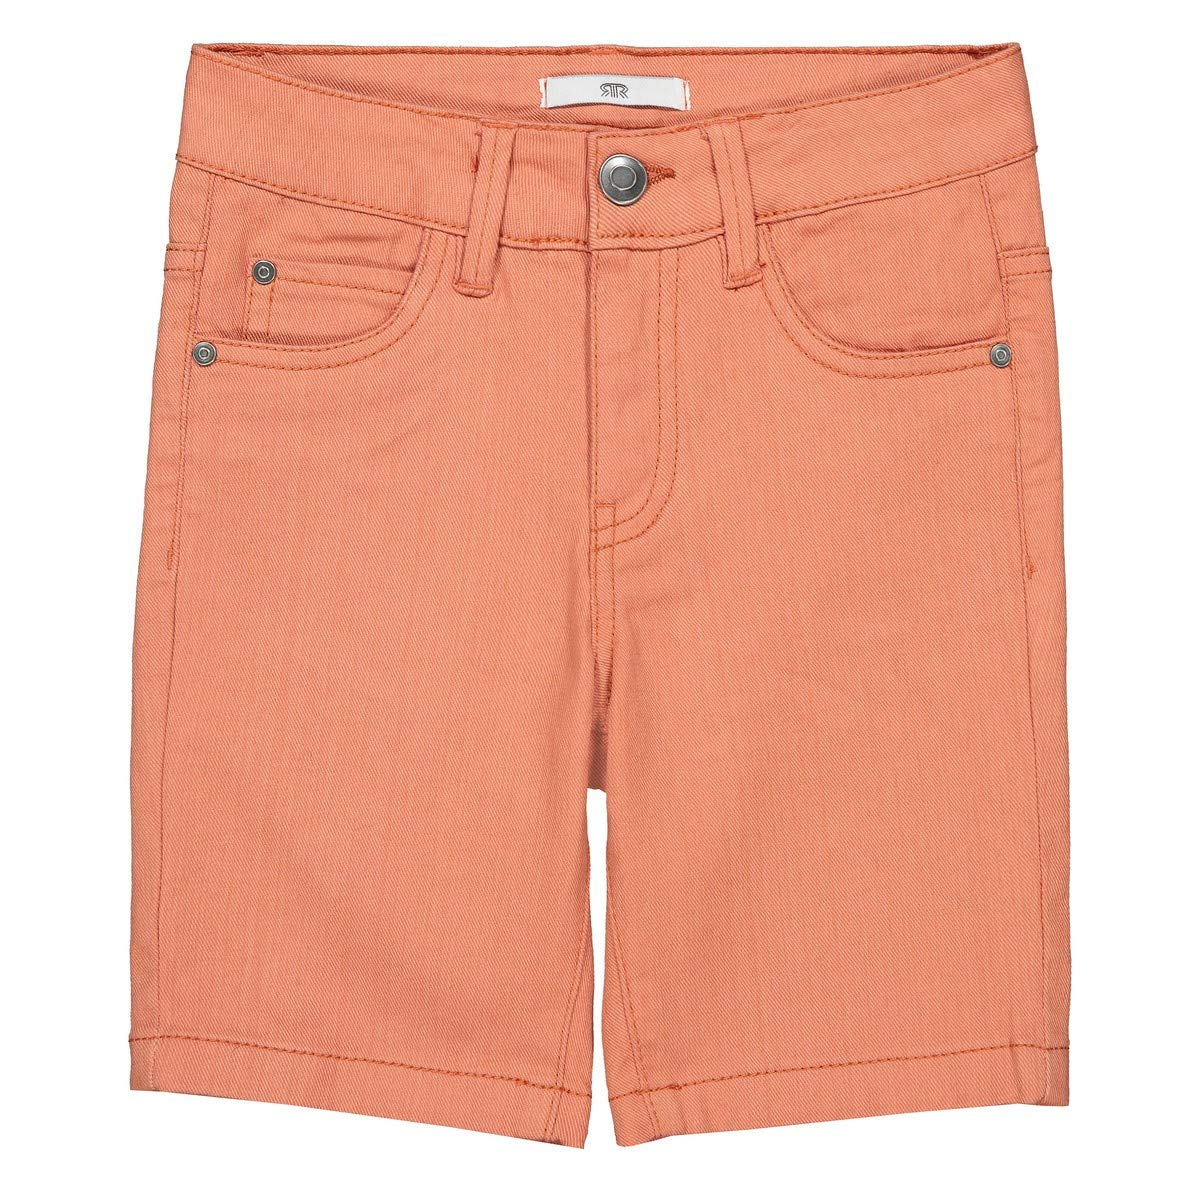 La Redoute Collections Big Boys Bermuda Shorts 2-12 Years